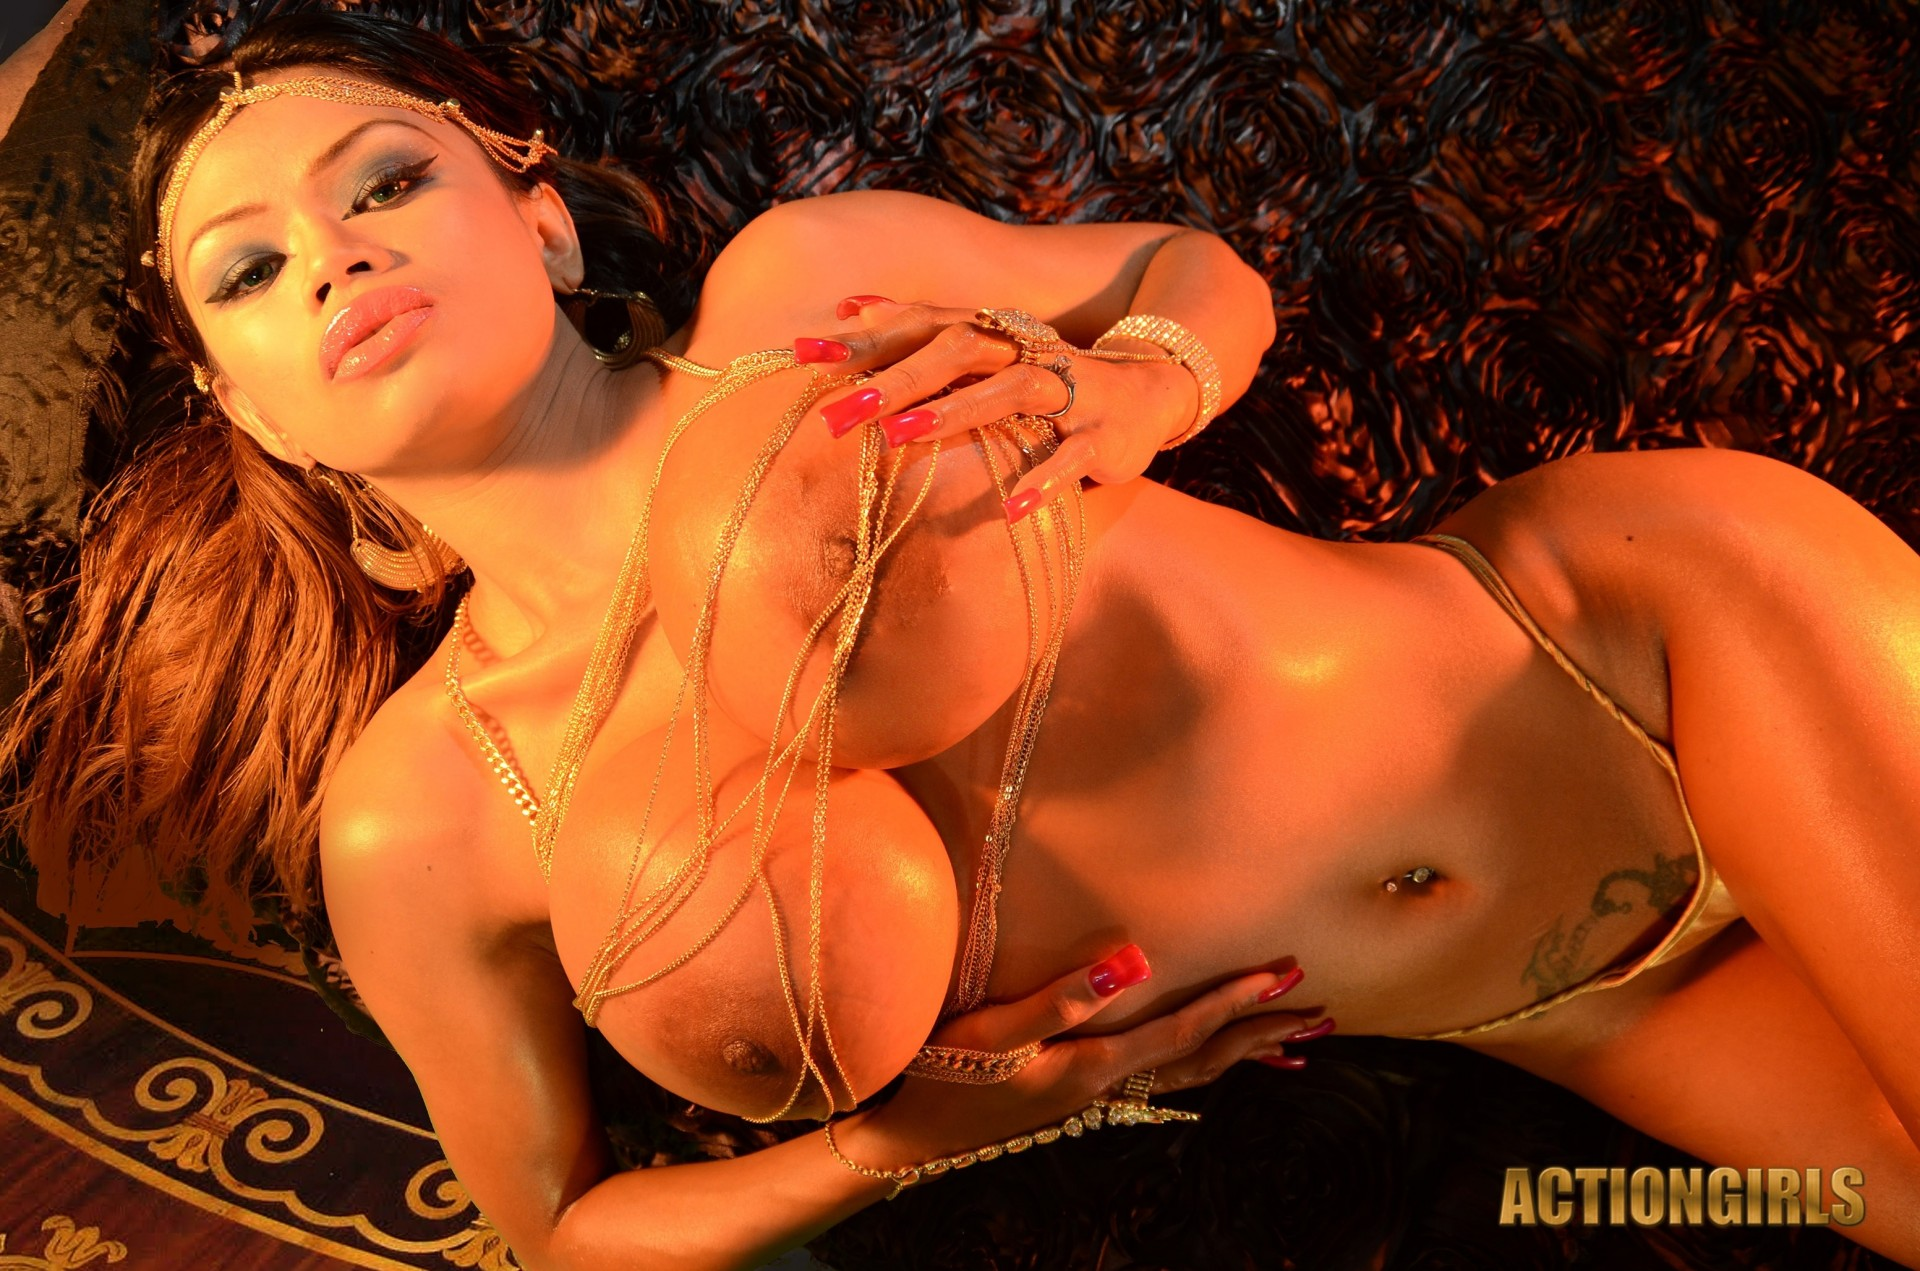 juice-action-xx-live-sexy-action-picture-nylons